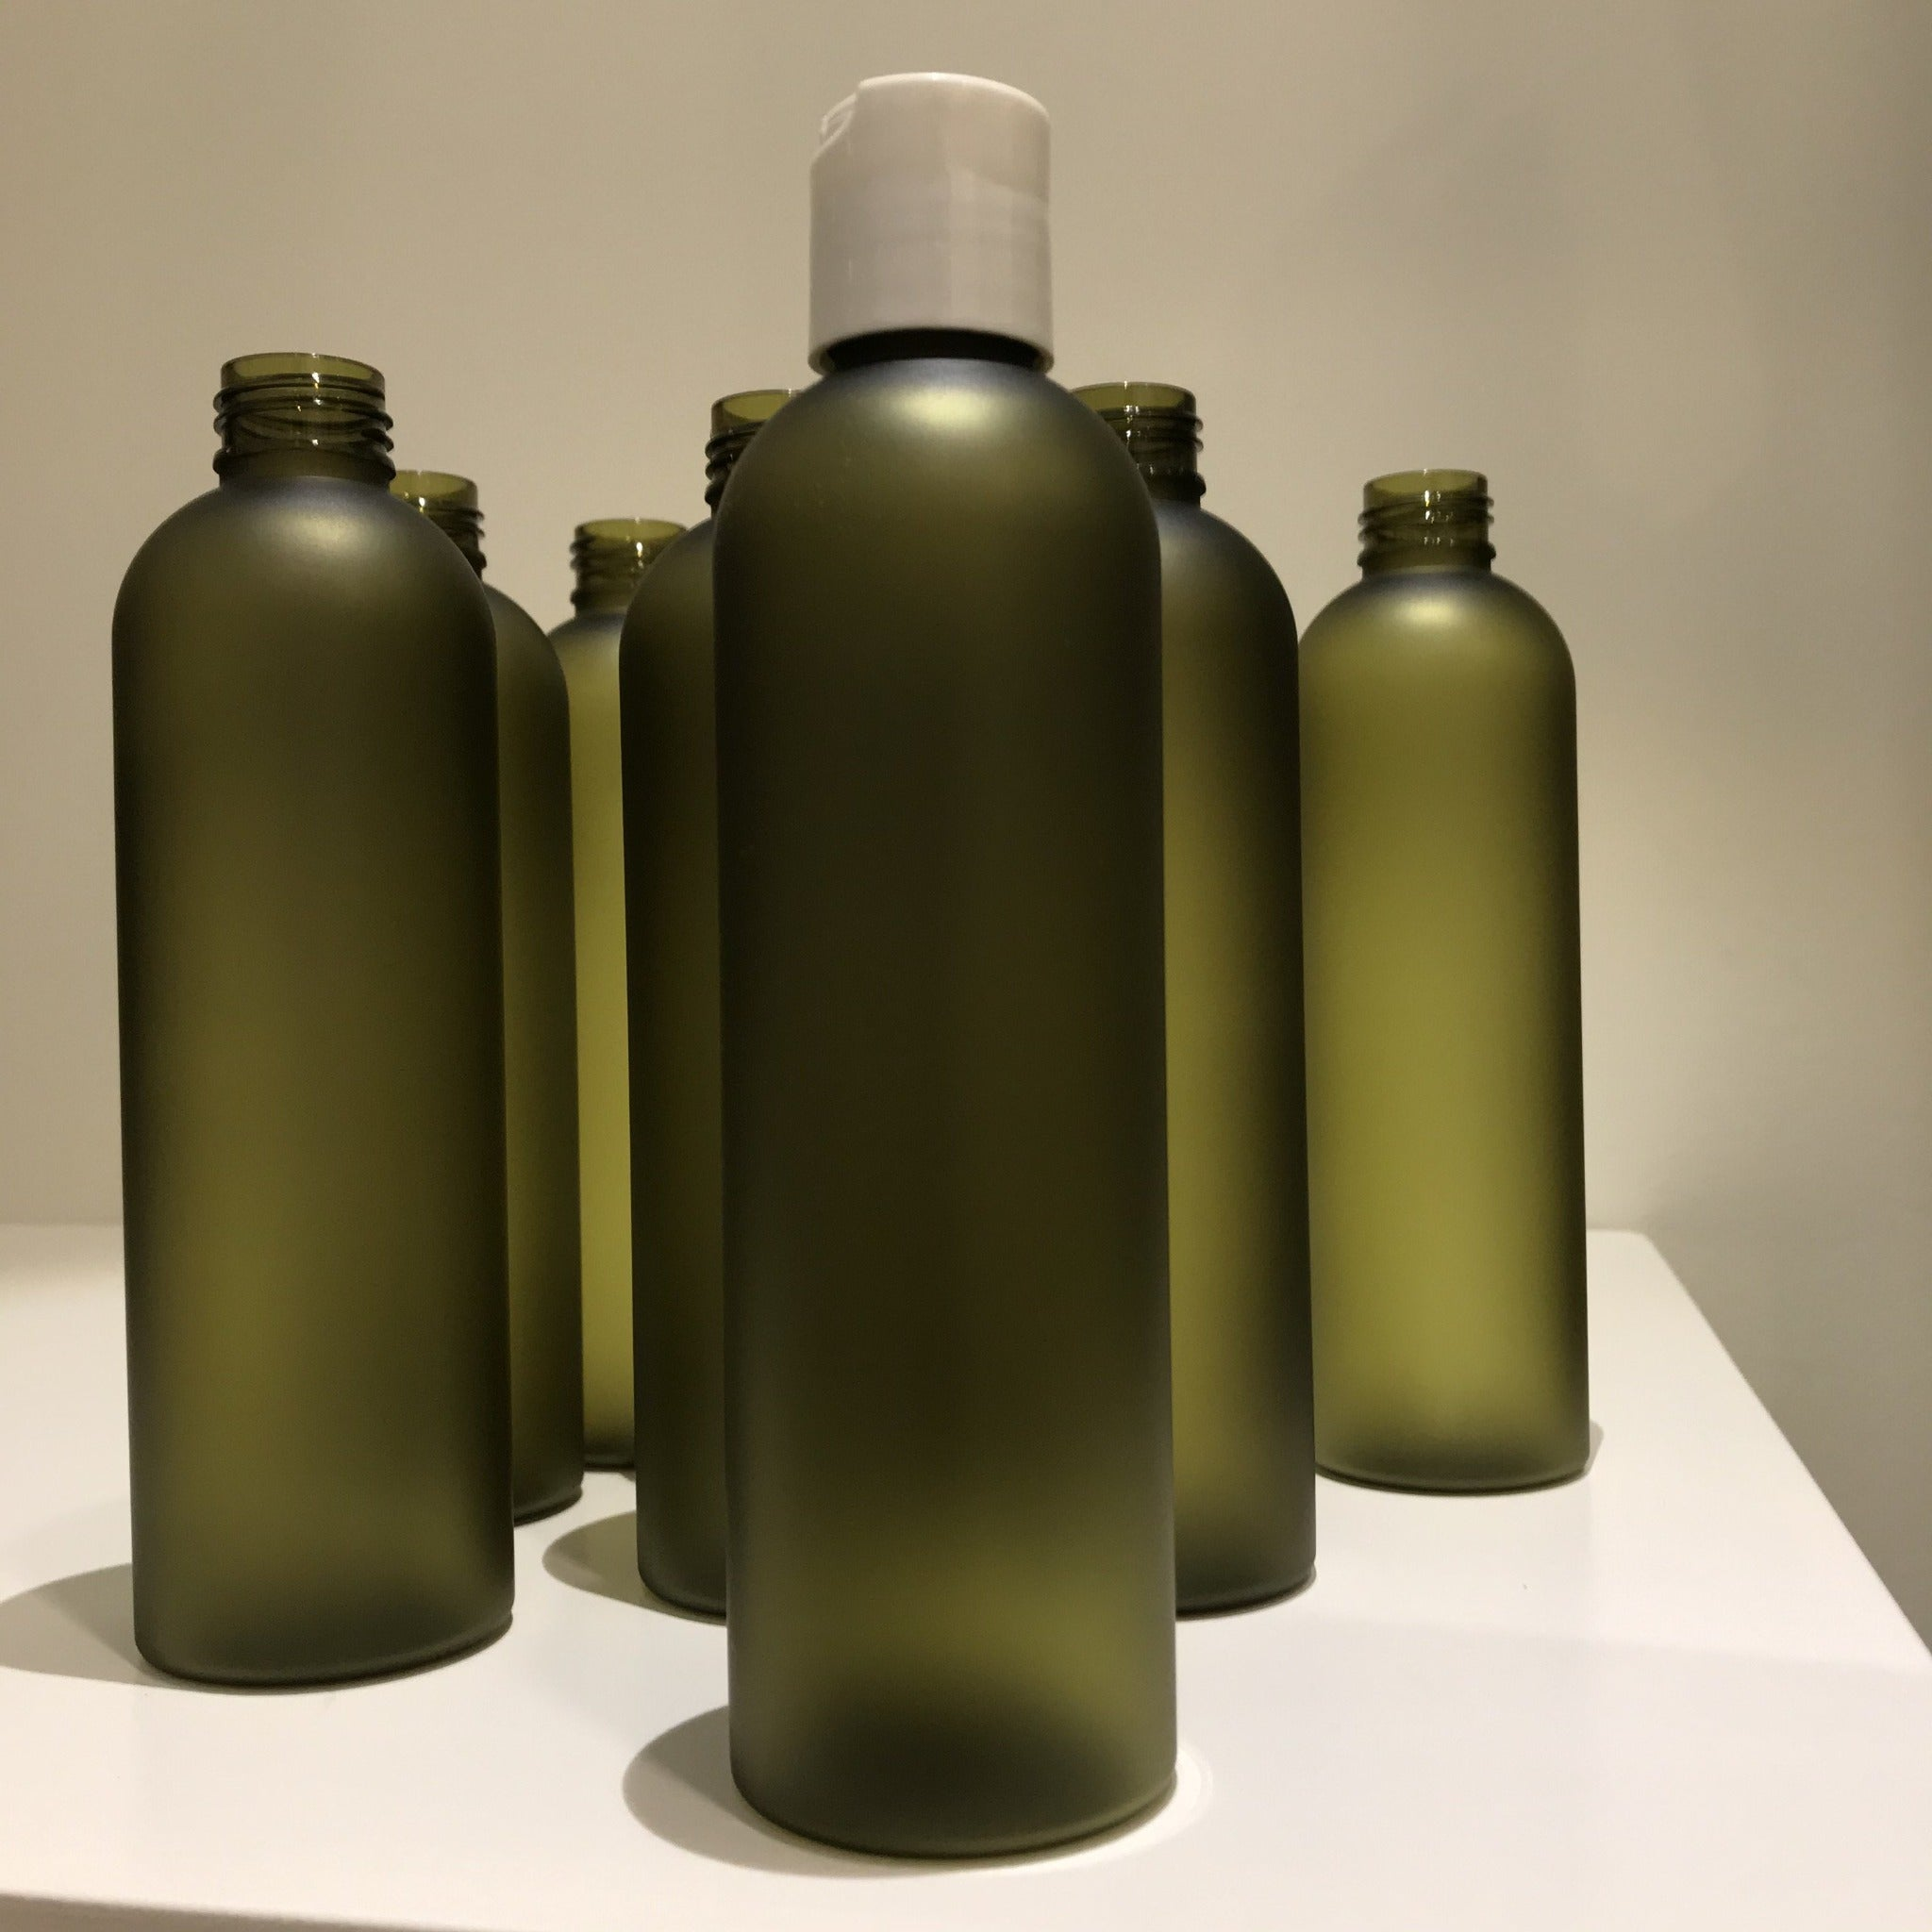 BPA Free Plastic Bottles Olive Frosted for Massage Mediums